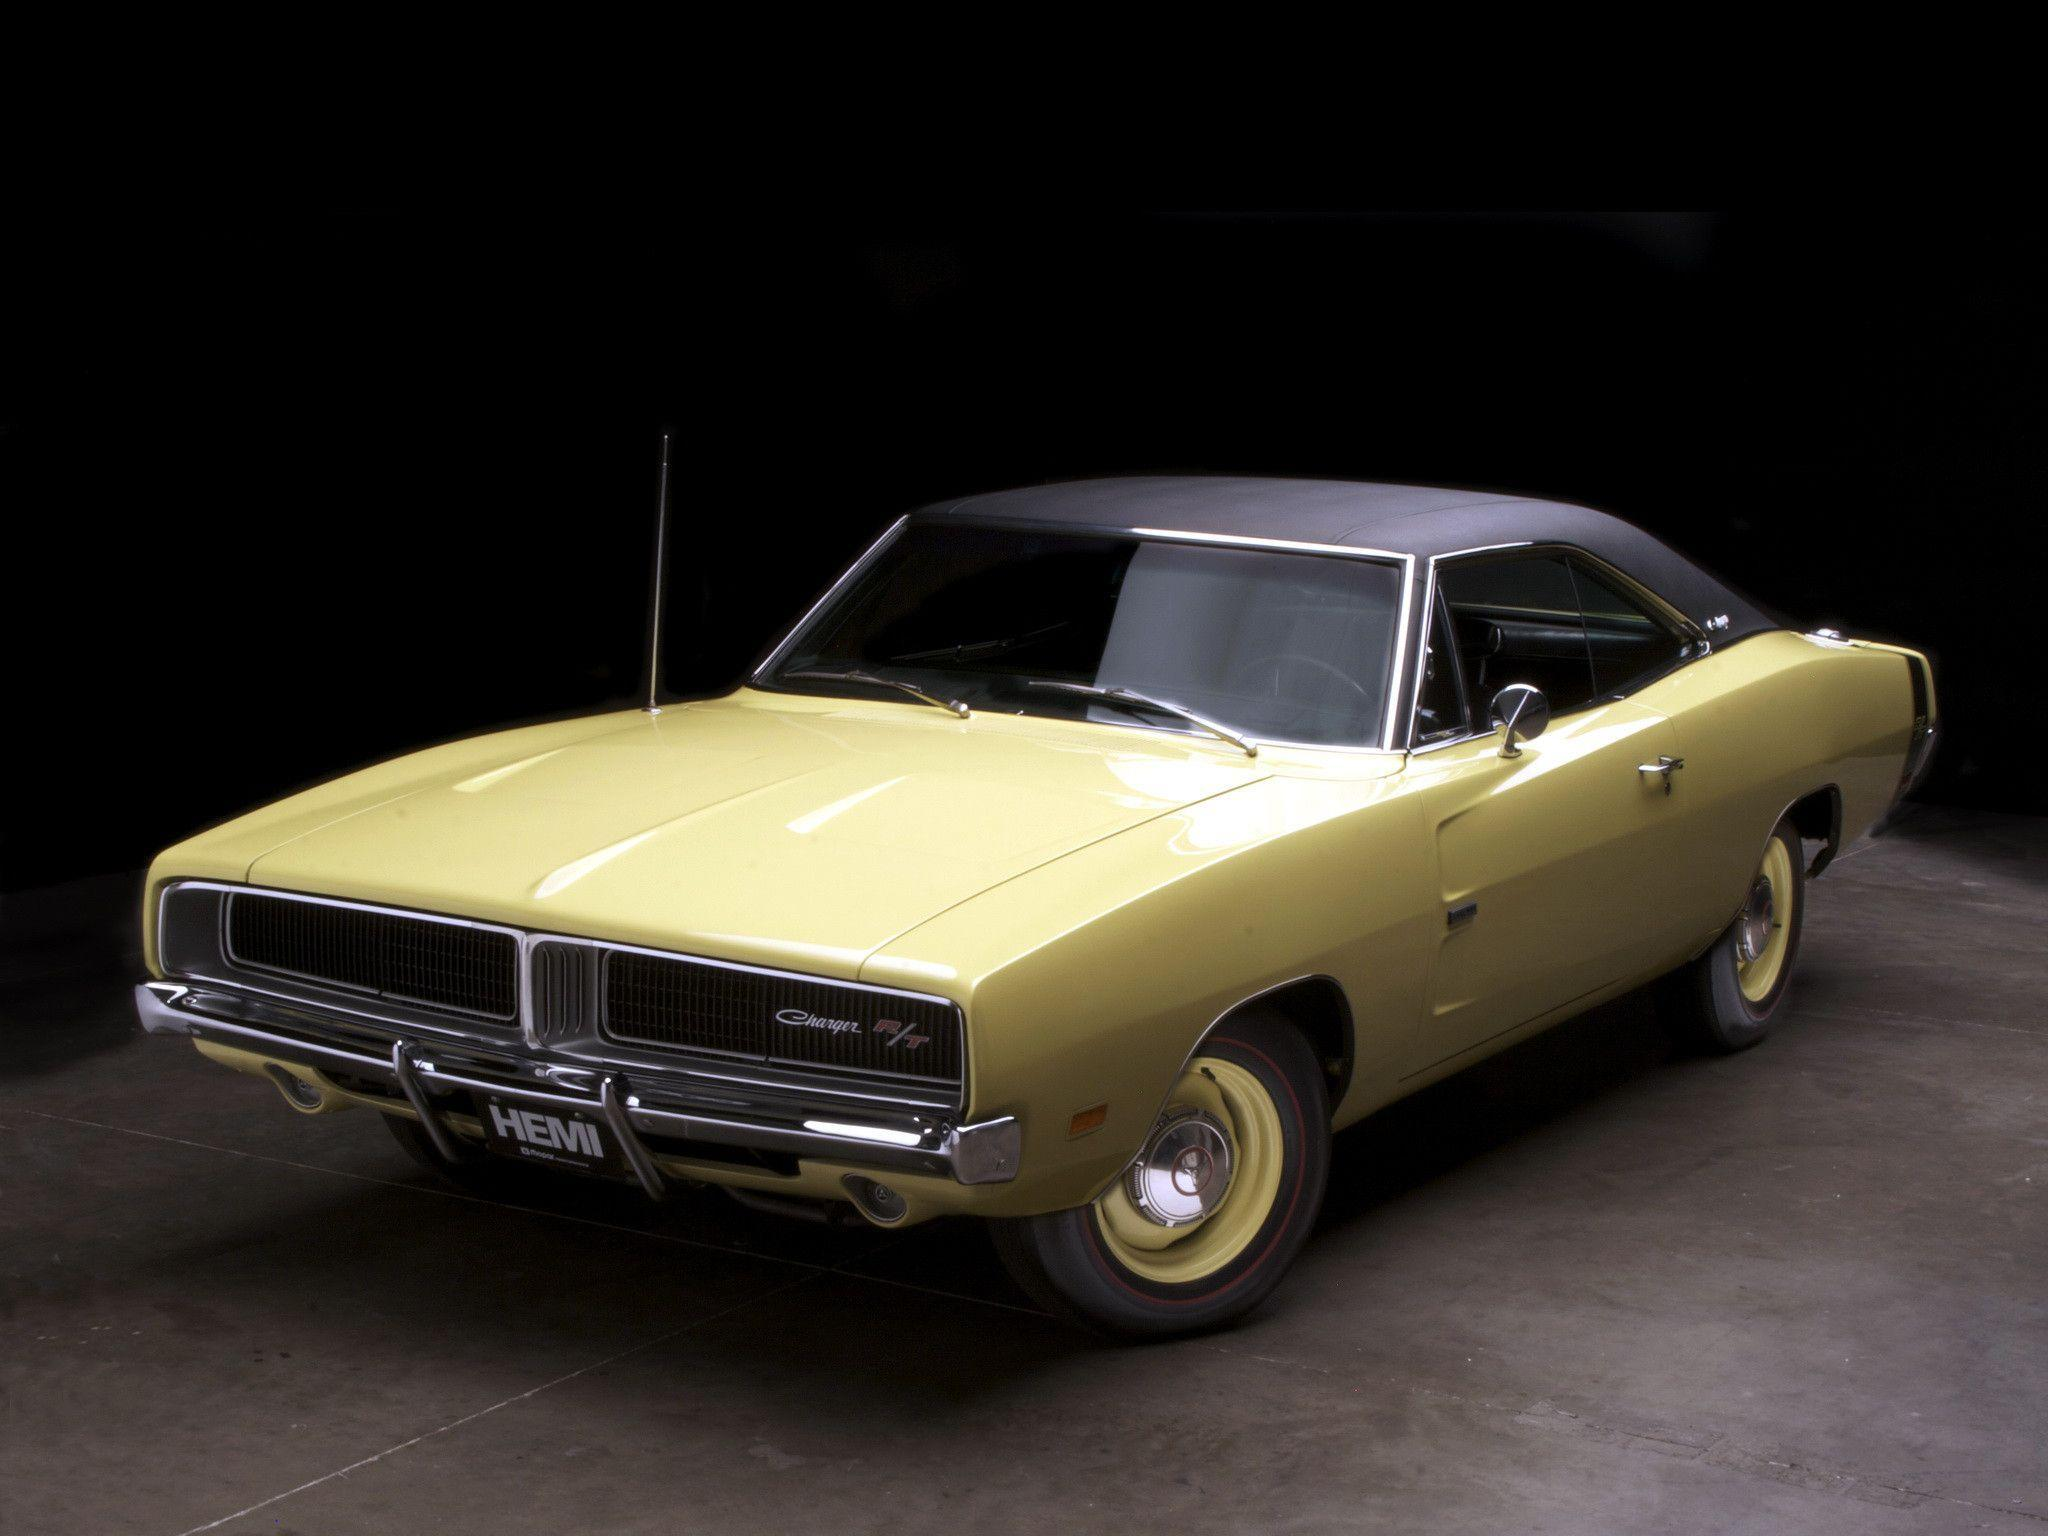 1969 charger wallpaper - photo #2